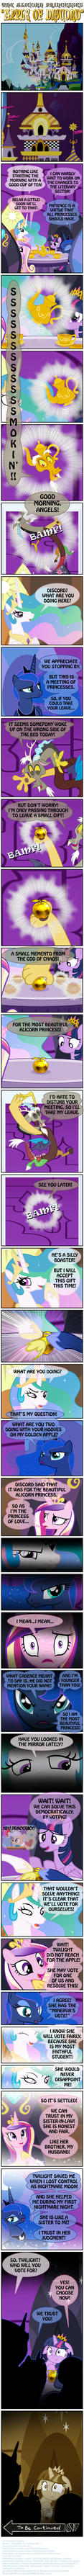 PONY SHORTS - ''APPLE OF DISCORD'' (1of3) by PONYMAAN